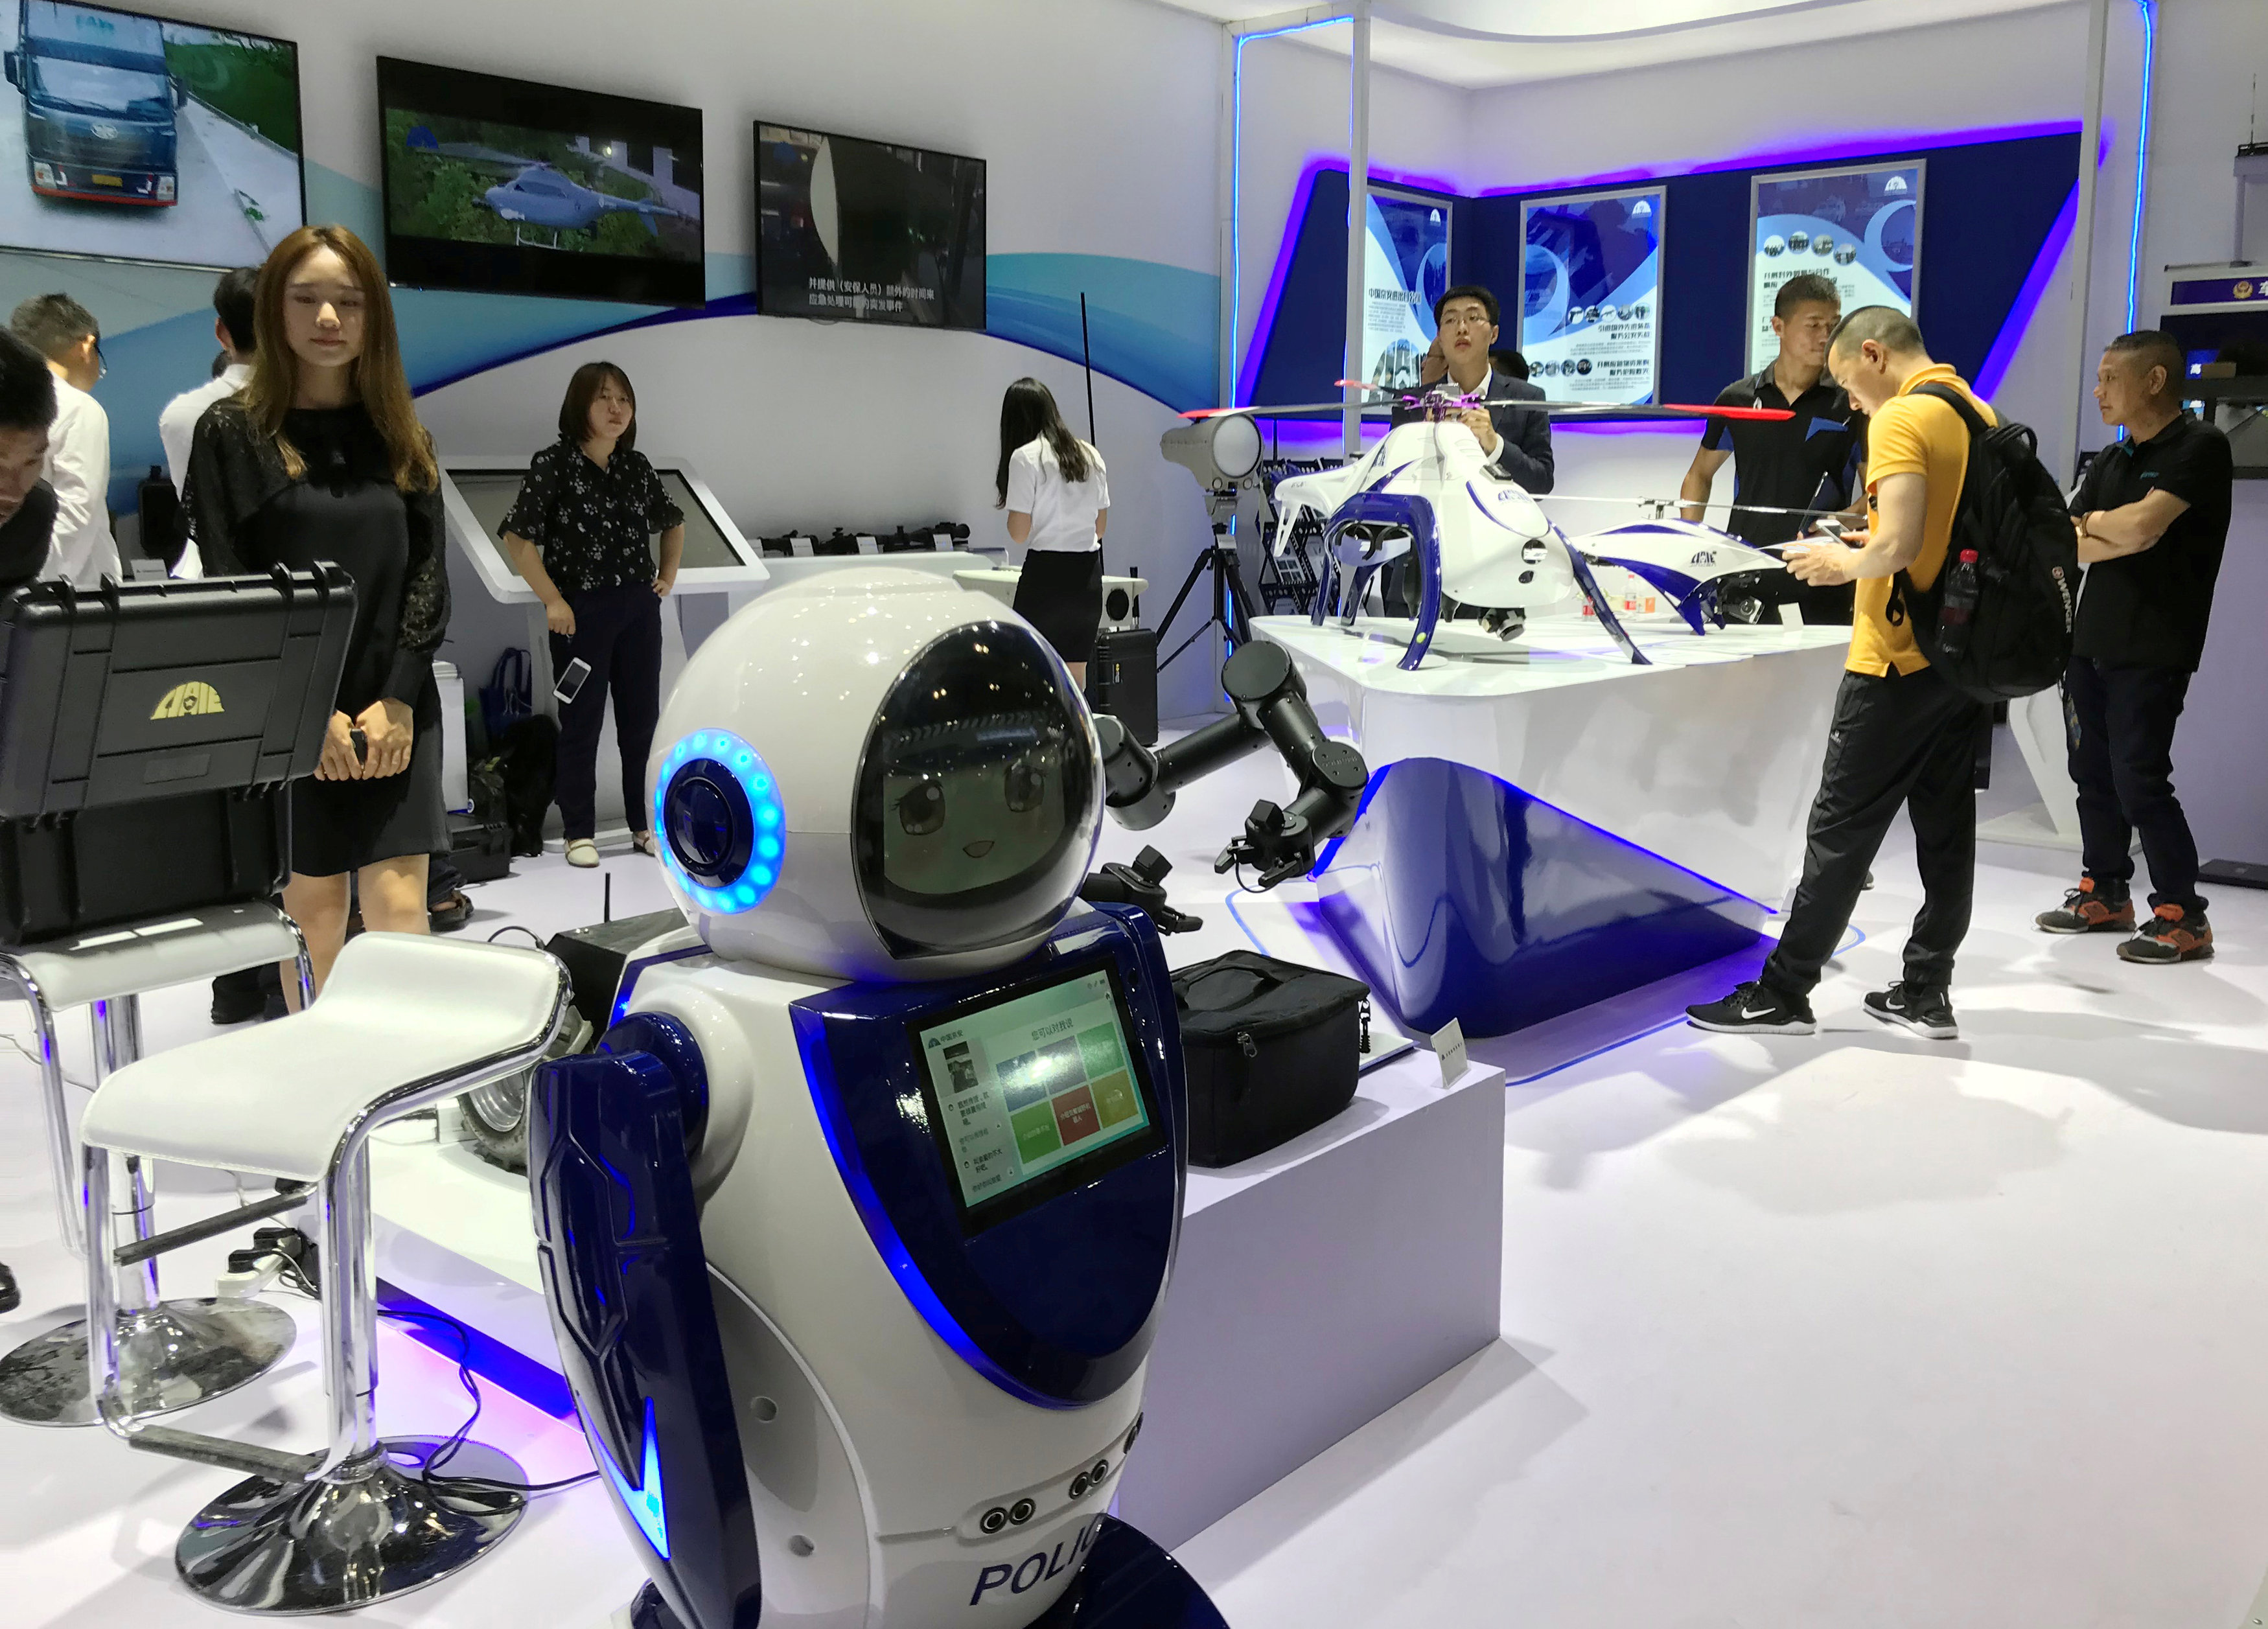 Police robot that can scan faces is seen on display at the China International Exhibition on Police Equipment in Beijing